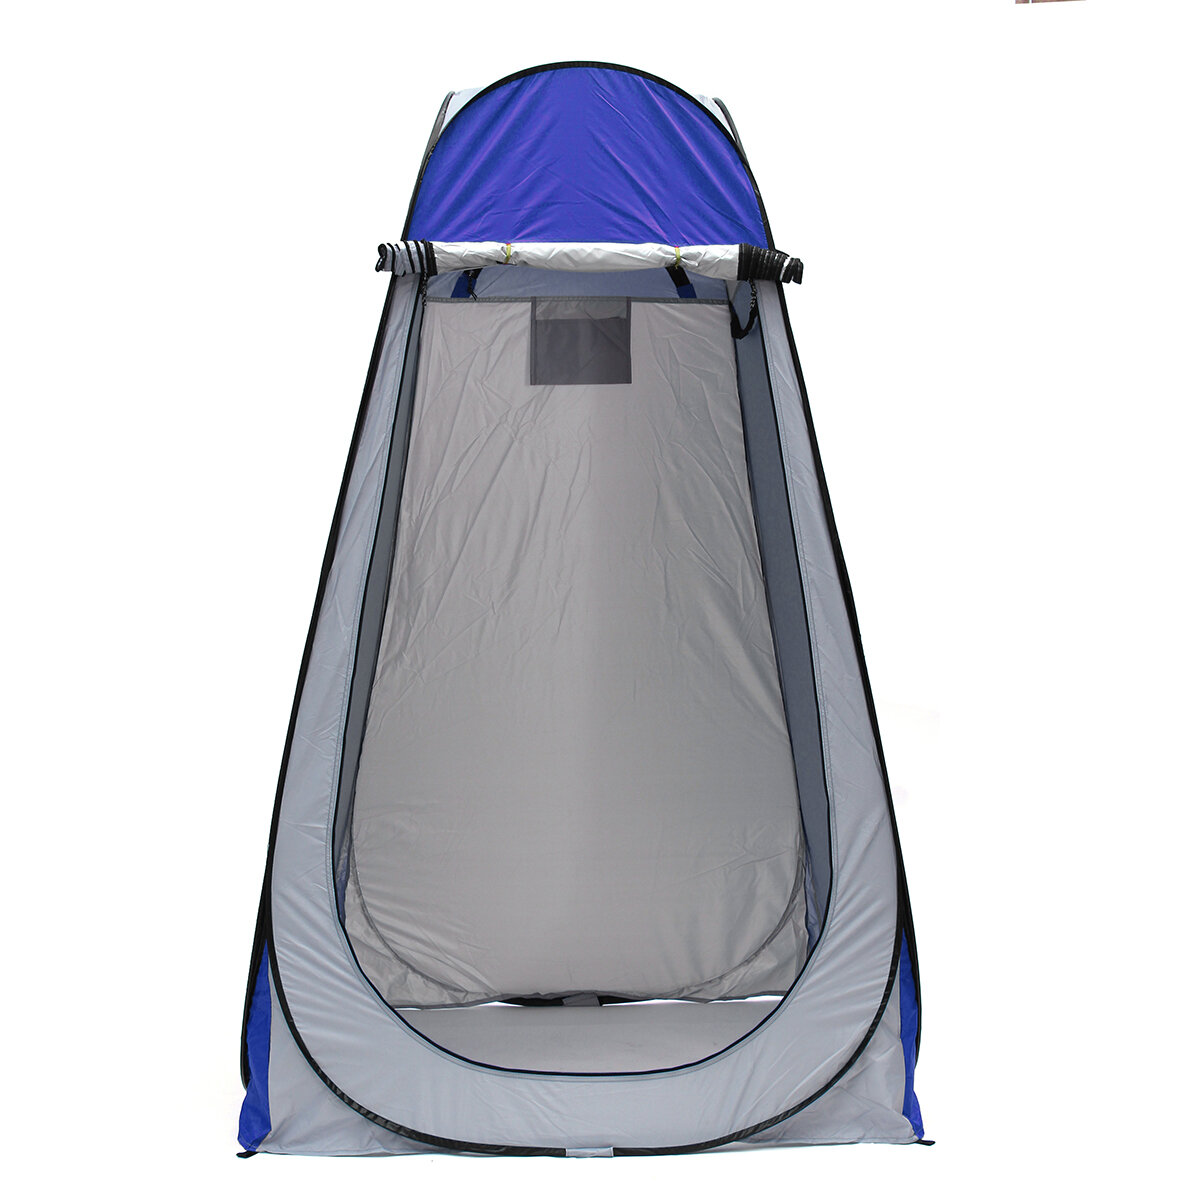 Automatic Speed Open Foldable Single Person Meditation Yoga Bed Tent Outdoor Beach Fishing Outdoor Camping Tent - 2